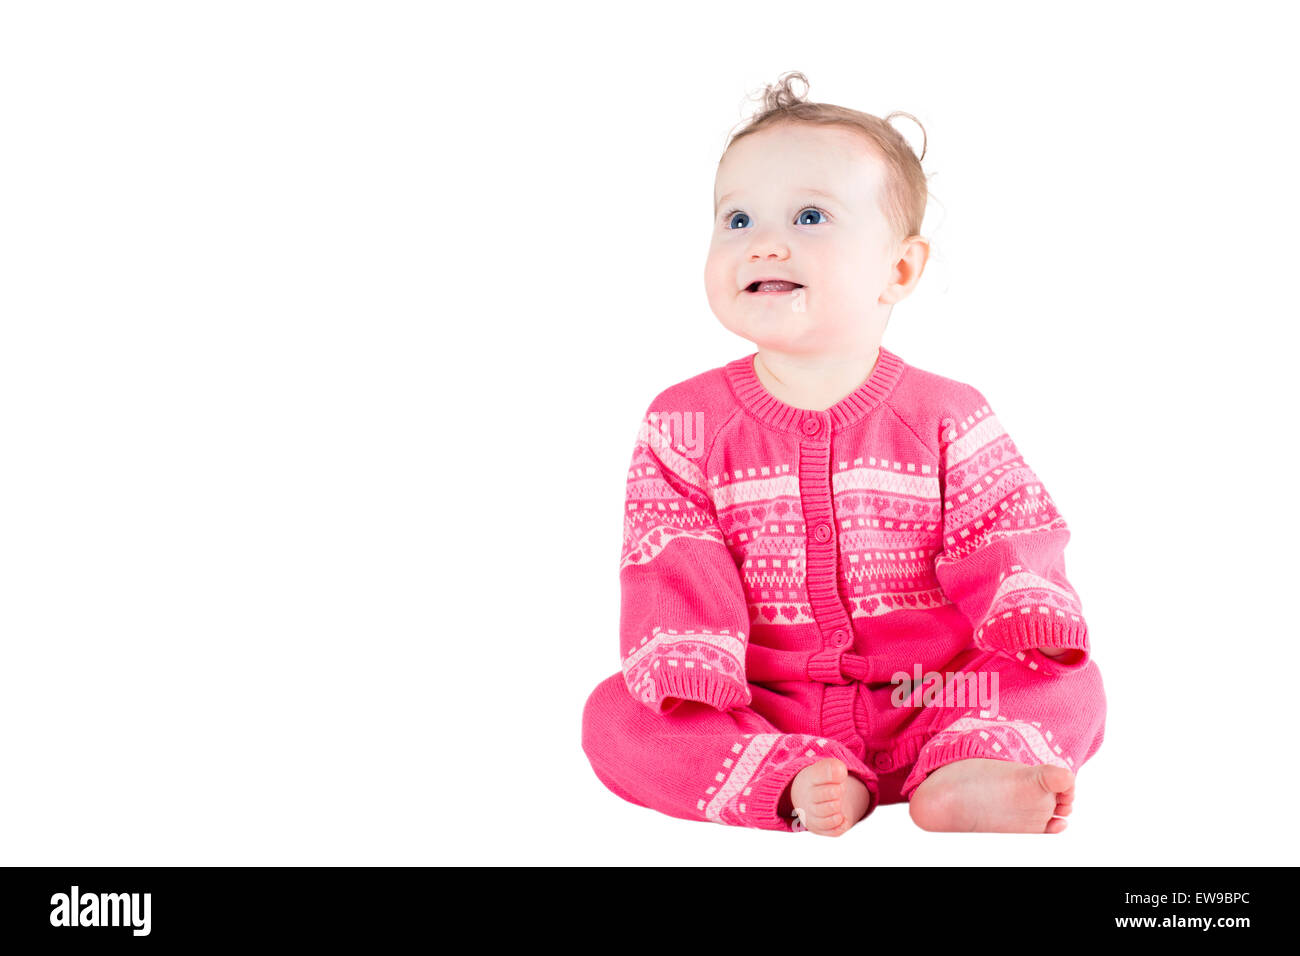 Sweet baby girl in a pink sweater with hearts pattern, isolated on white - Stock Image